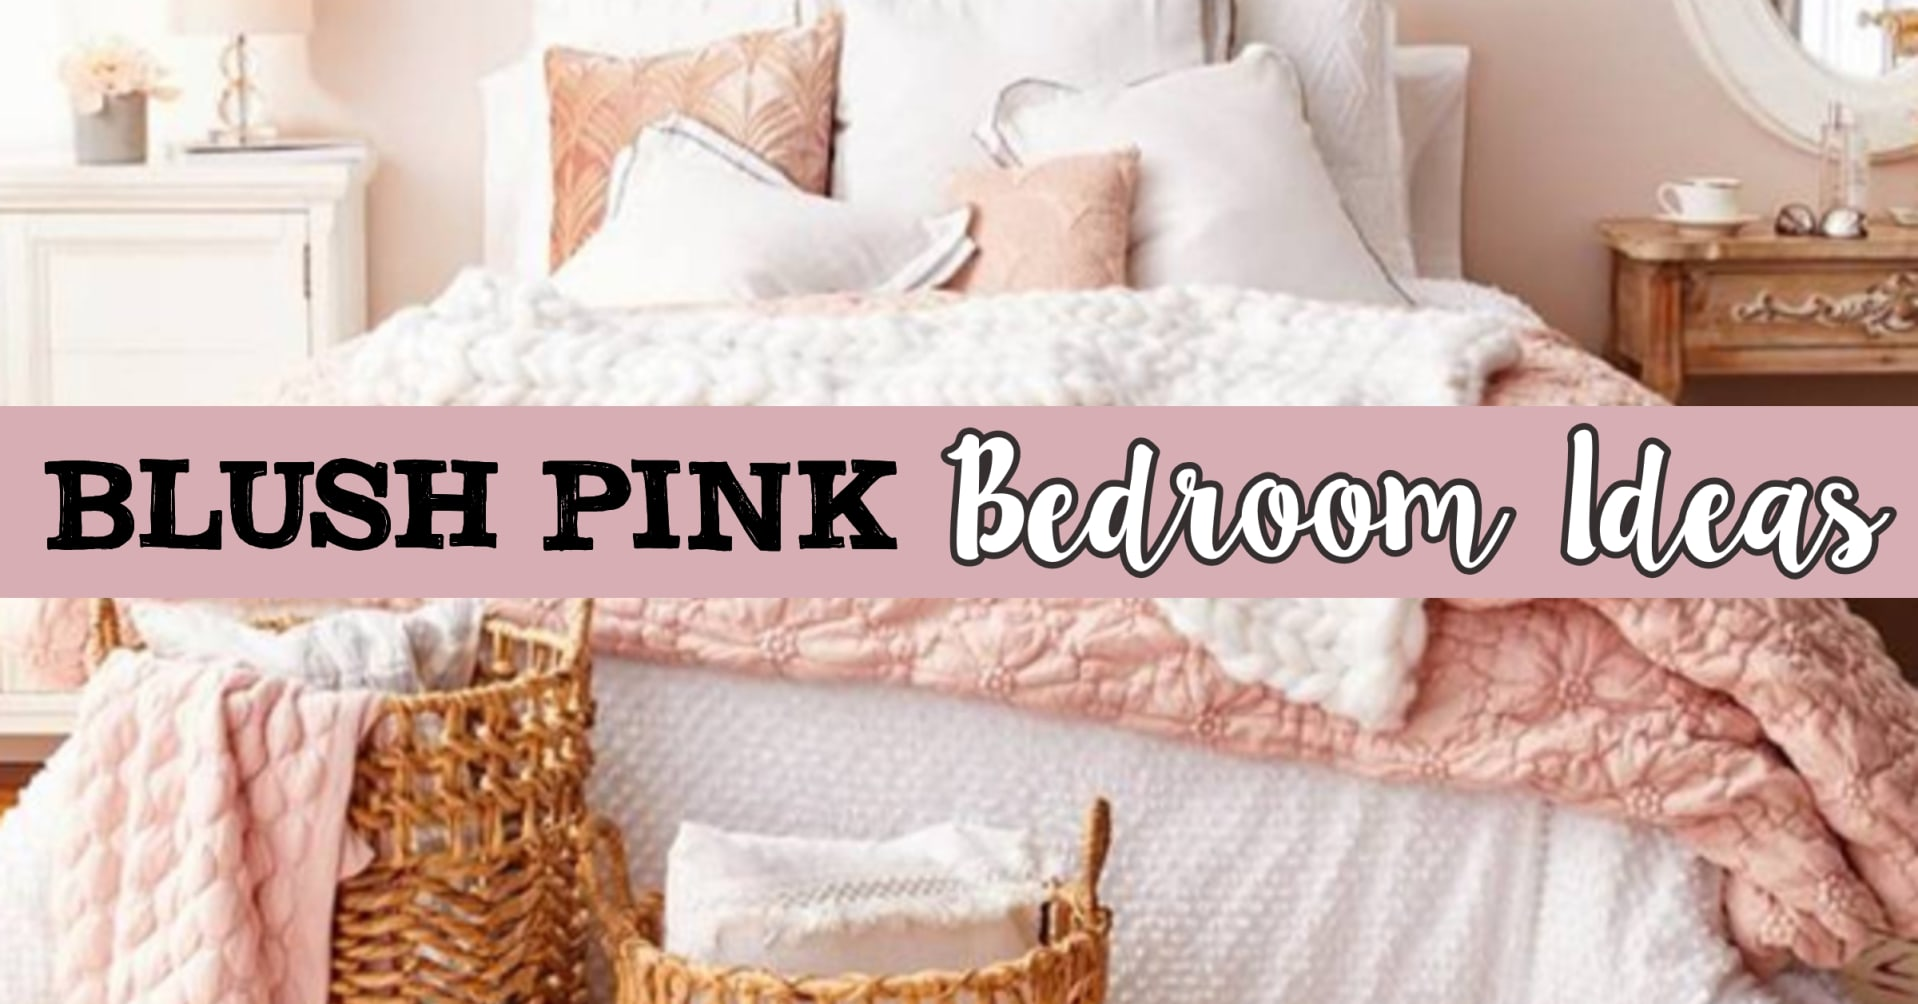 Blush Pink Bedroom Ideas Dusty Rose Bedroom Decor And Bedding I Love Clever Diy Ideas